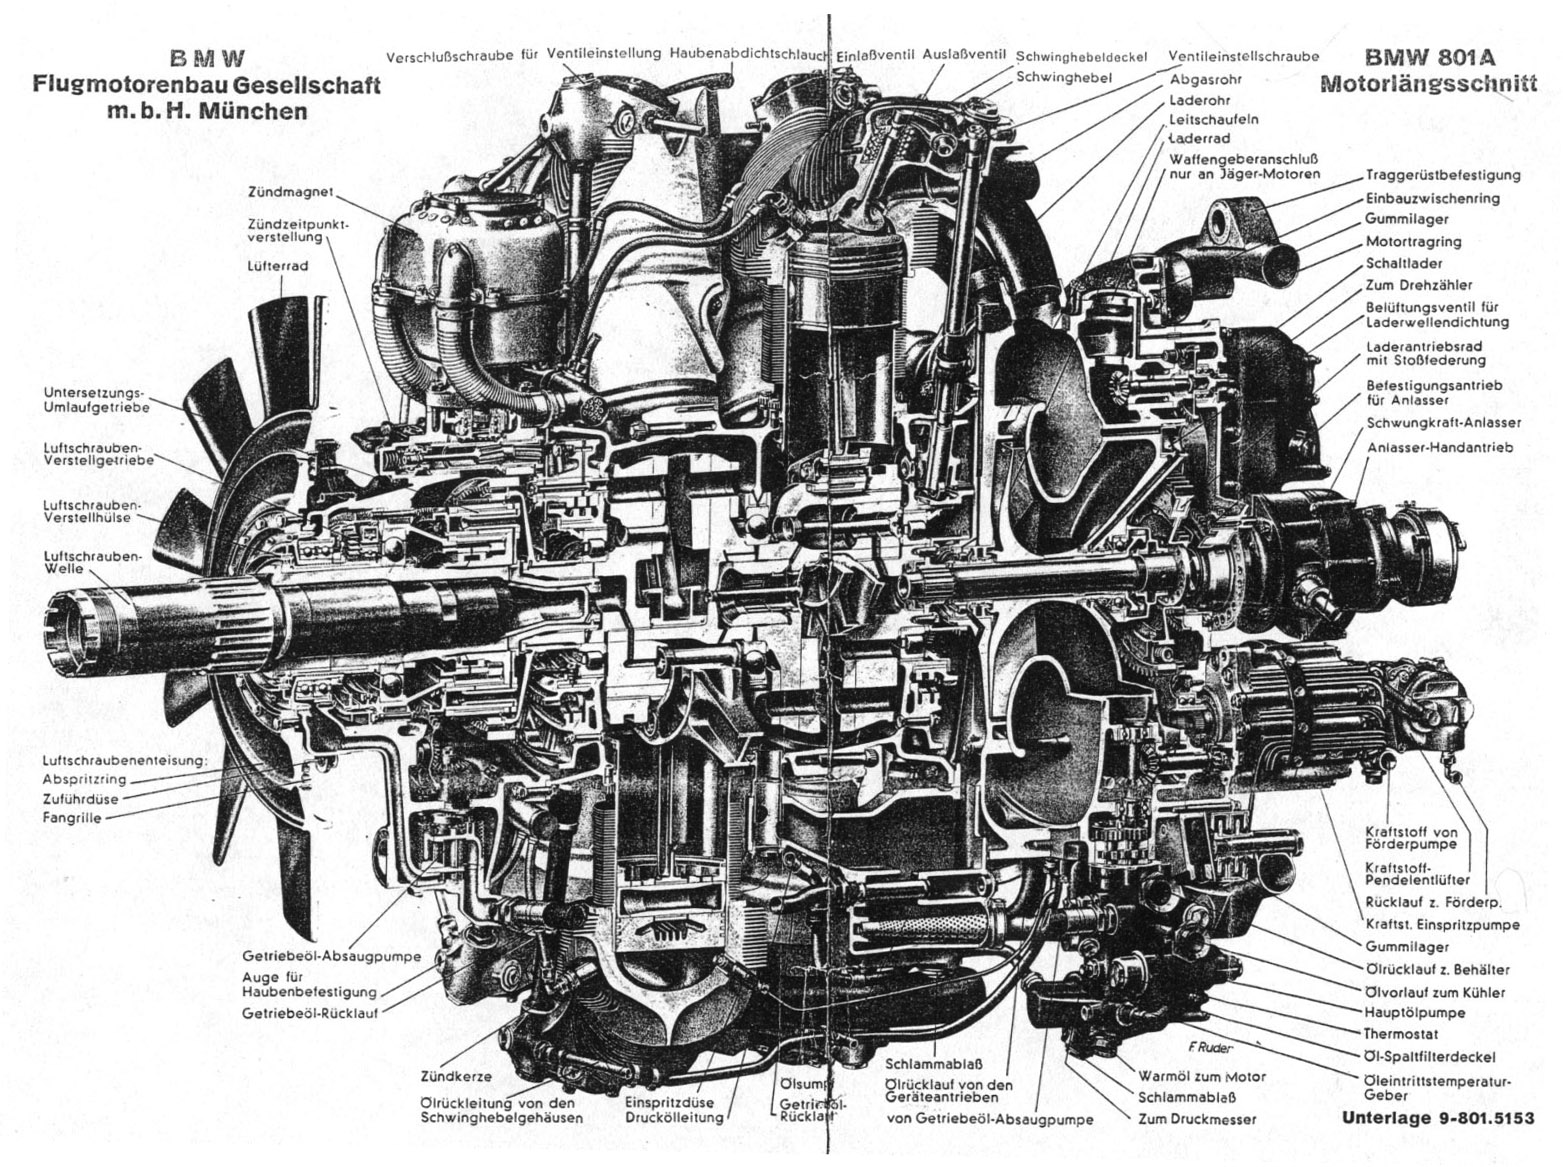 cutaway bmw 801 piston radial aircraft engine sobchak security rh sobchak wordpress com Inside a Radial Engine Radial Engine Crankshaft